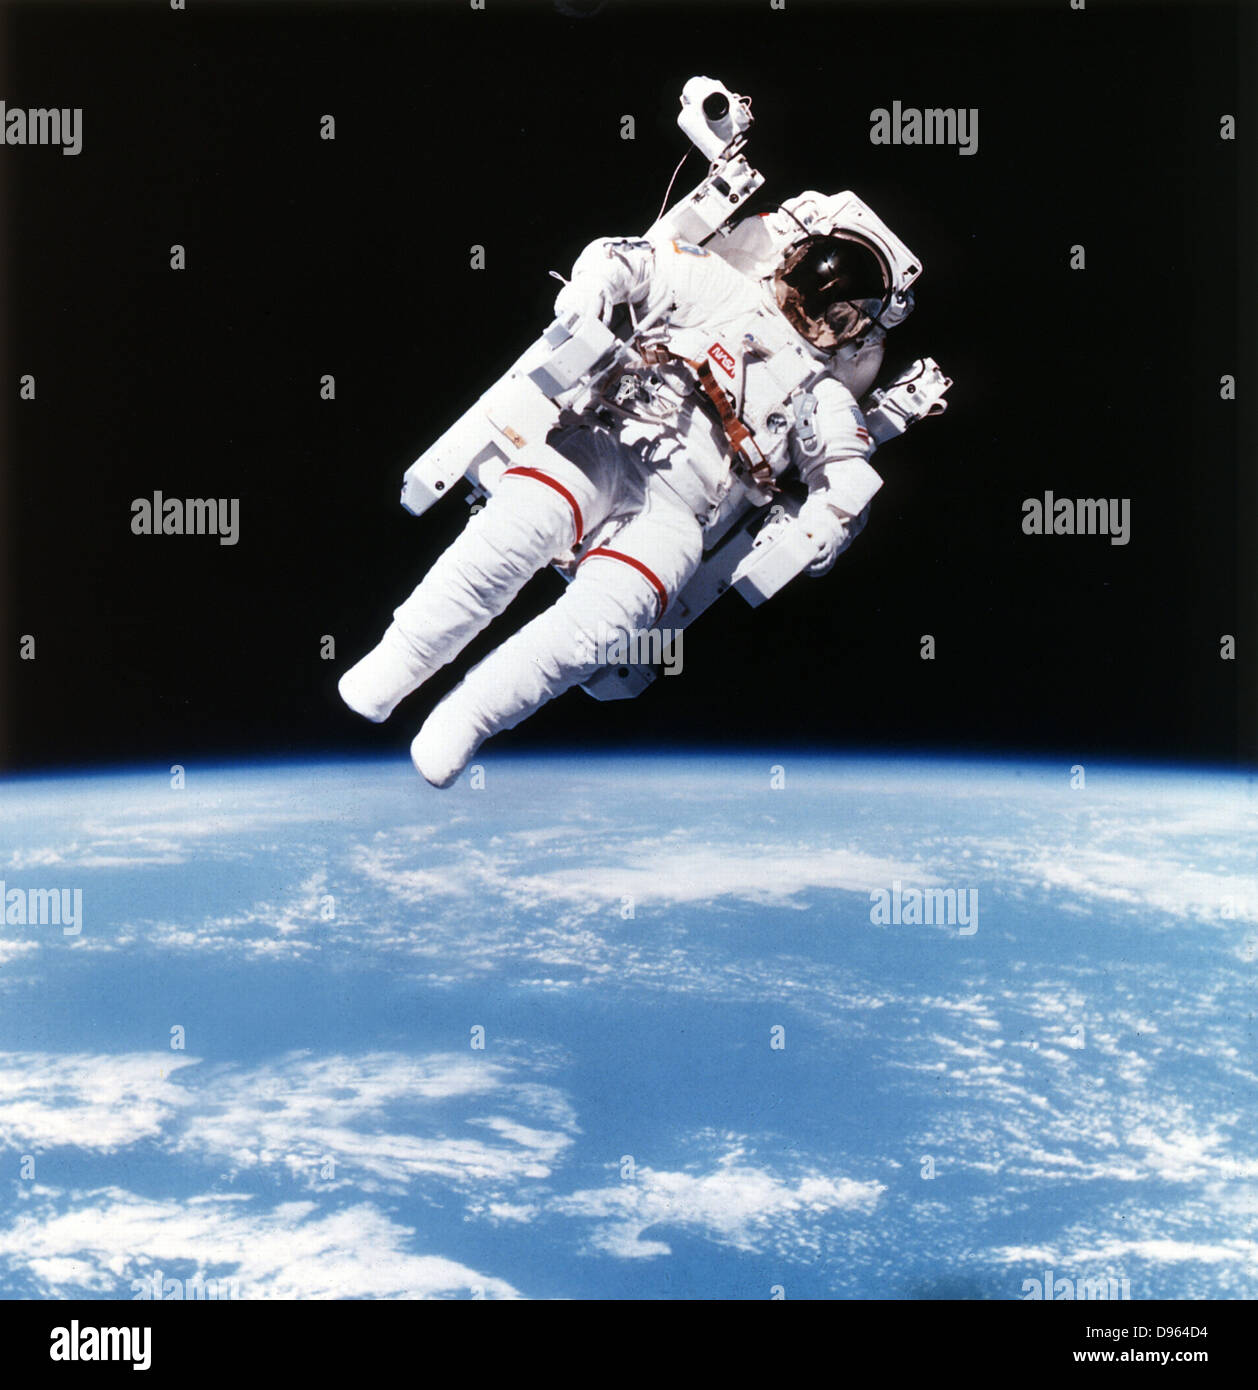 US Astronaut Bruce McCandless on Mission 41-B on extravehicular space movement using first nitrogen-propelled, hand - Stock Image